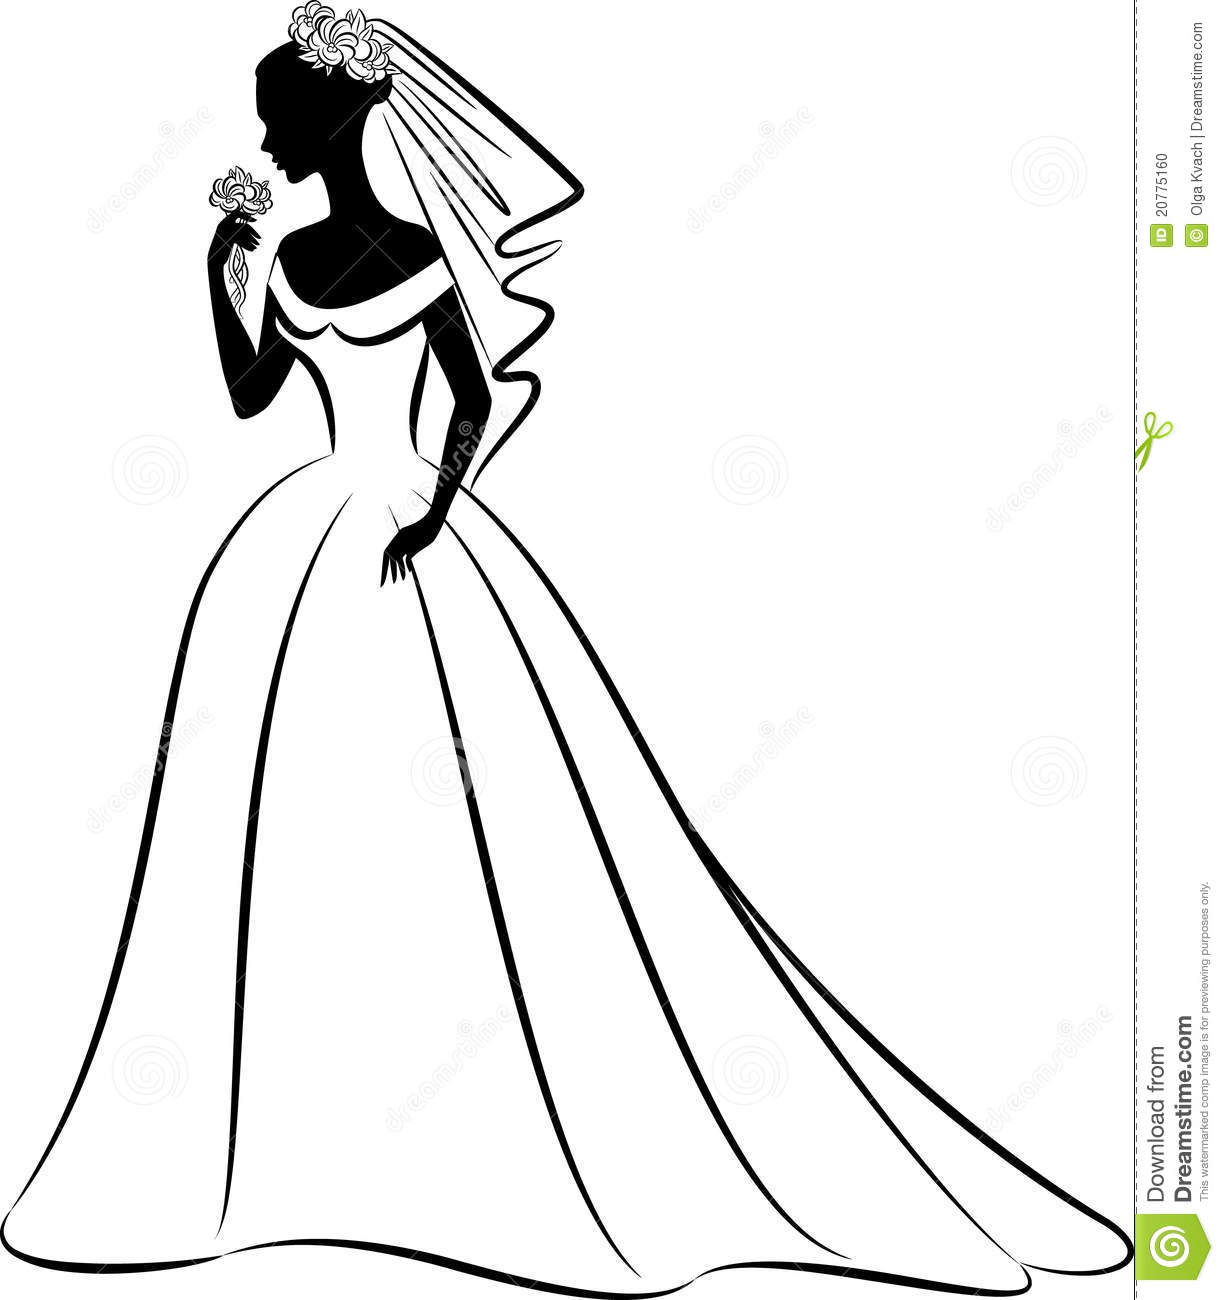 Wedding dress silhouette clip art at getdrawings free for 1224x1300 bridal clip art black and white junglespirit Choice Image